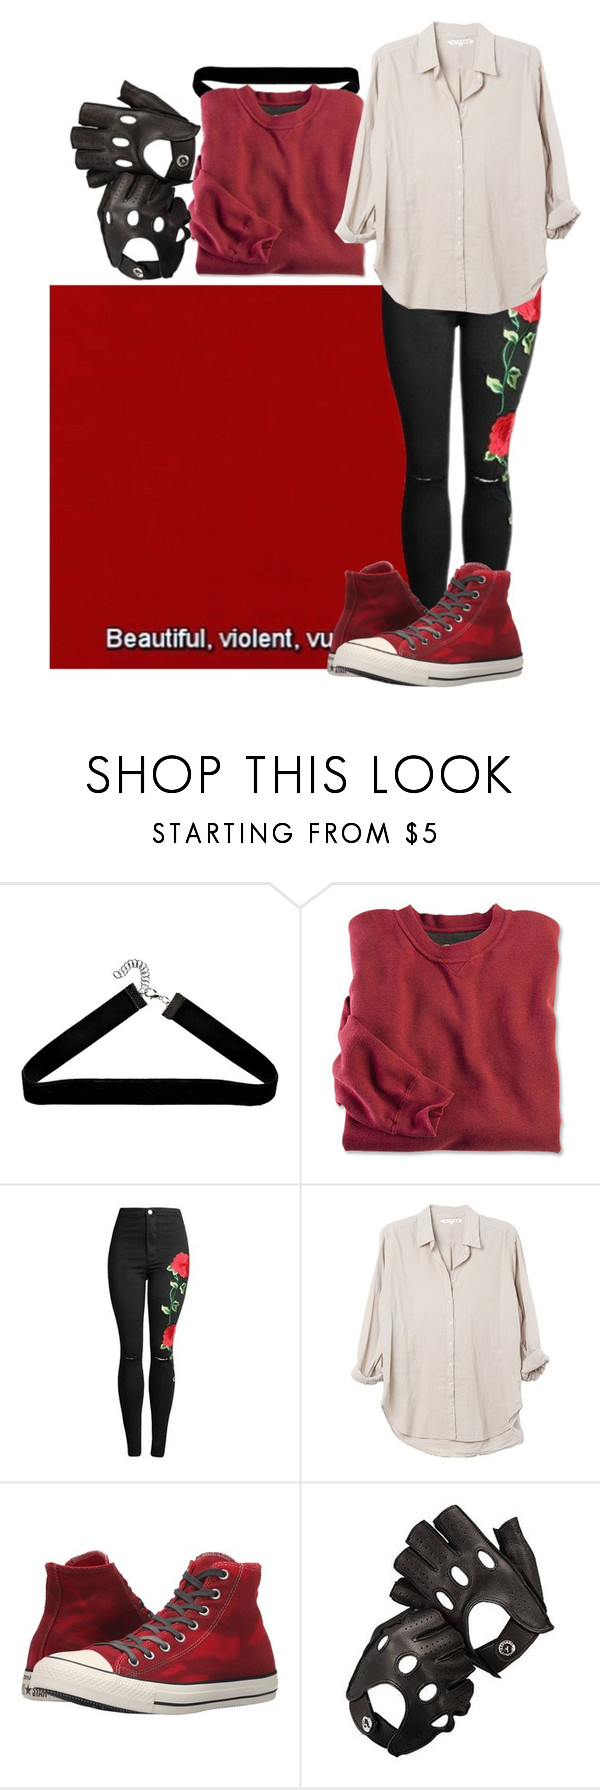 """""""Red, the color of desire"""" by biter-sweet ❤ liked on Polyvore featuring Boohoo, Xirena, Converse and Aspinal of London"""